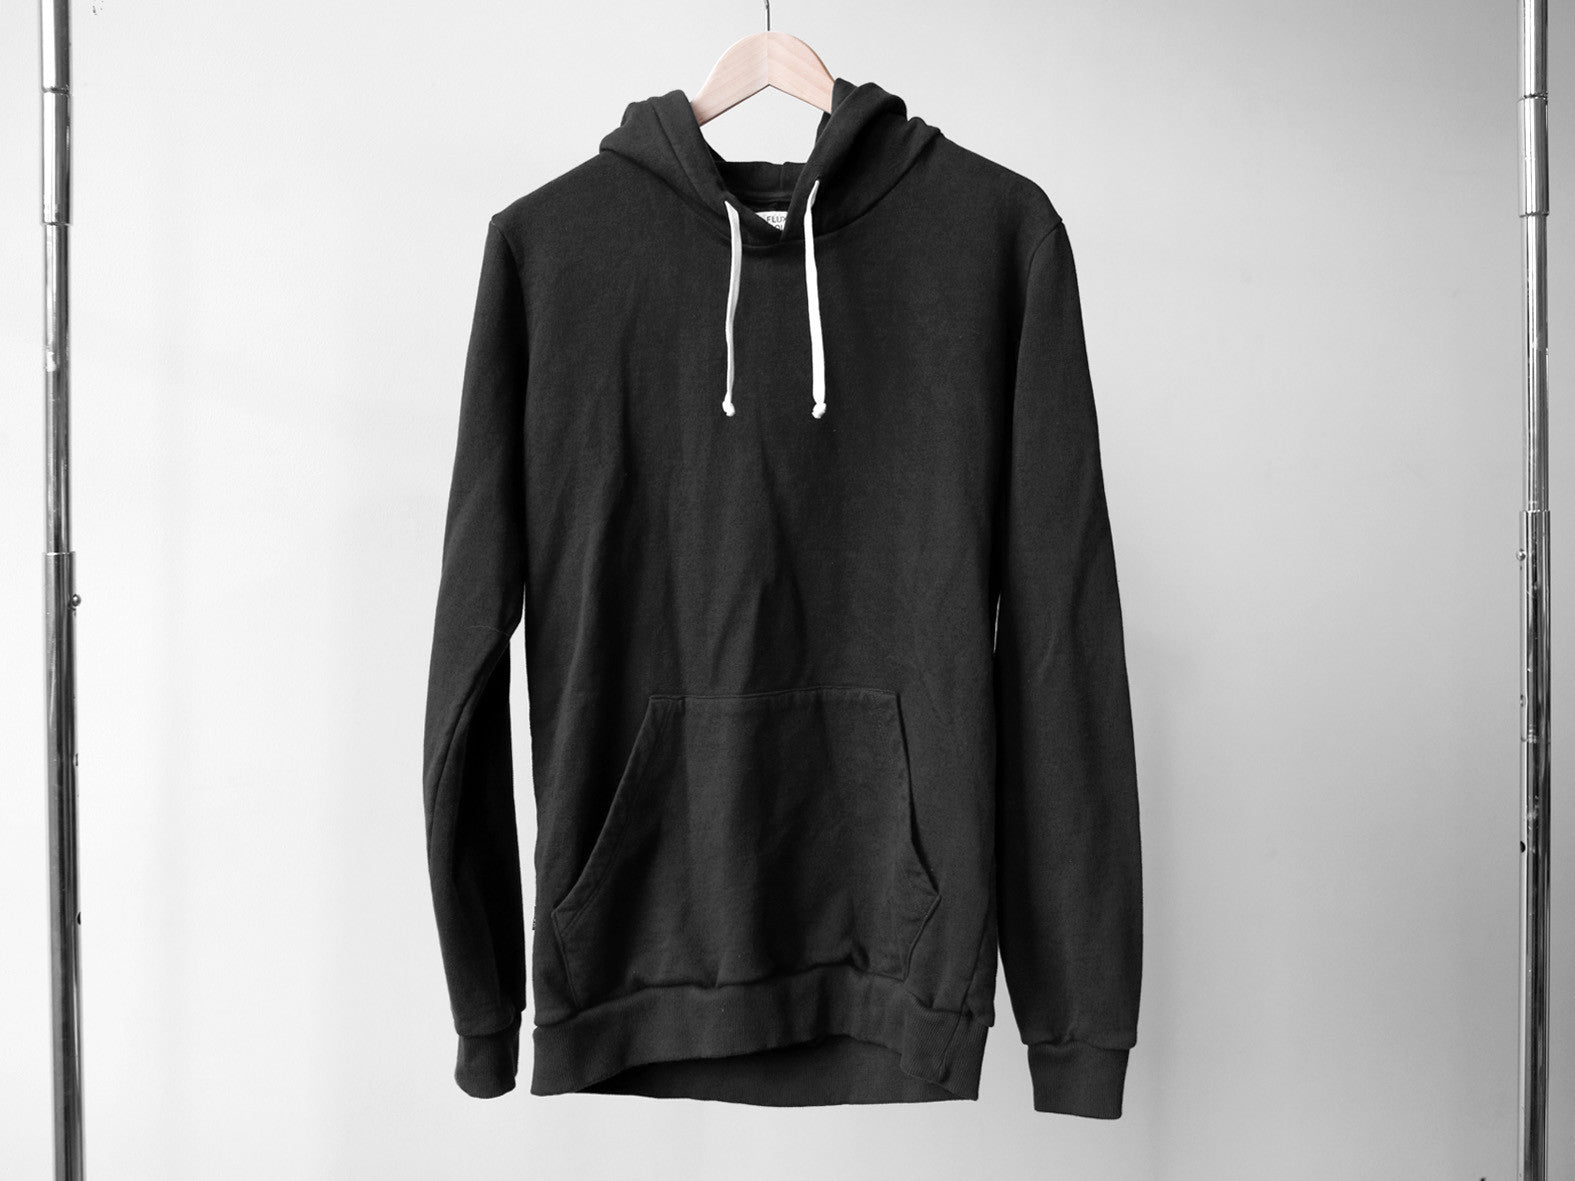 CLASSIC HOODED SWEATER. FADED BLACK.